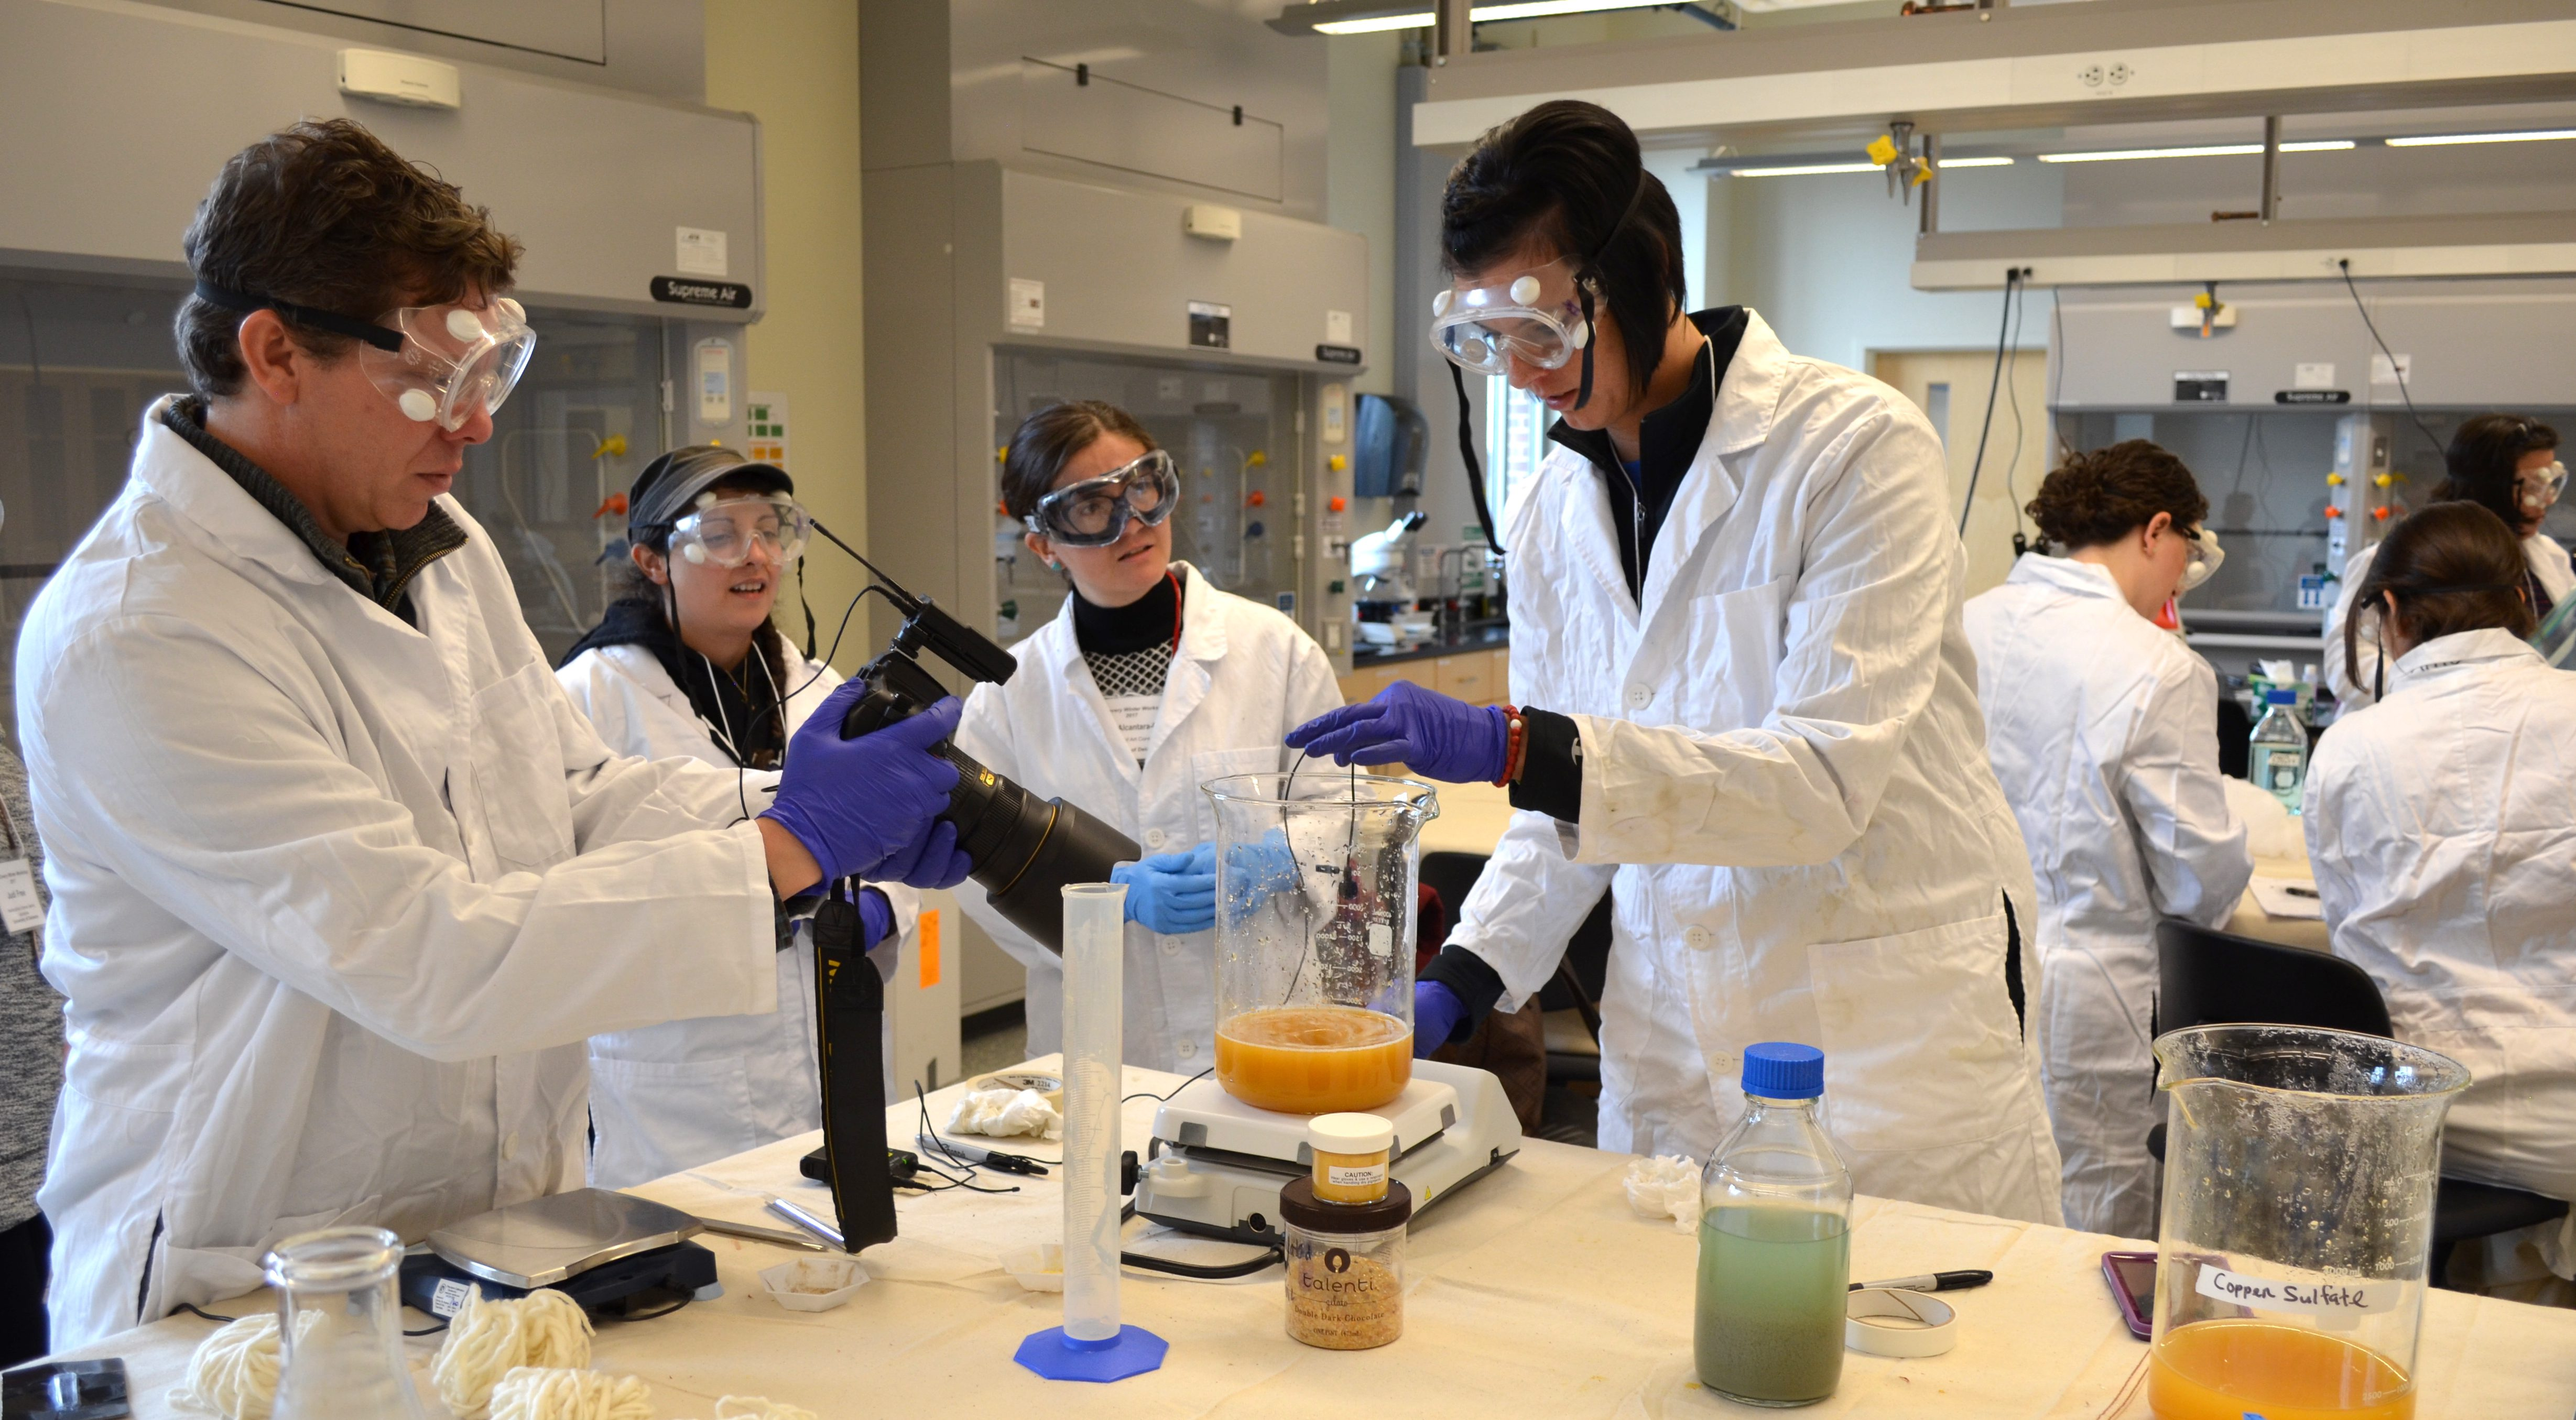 Students working with hot plates in a chemistry lab